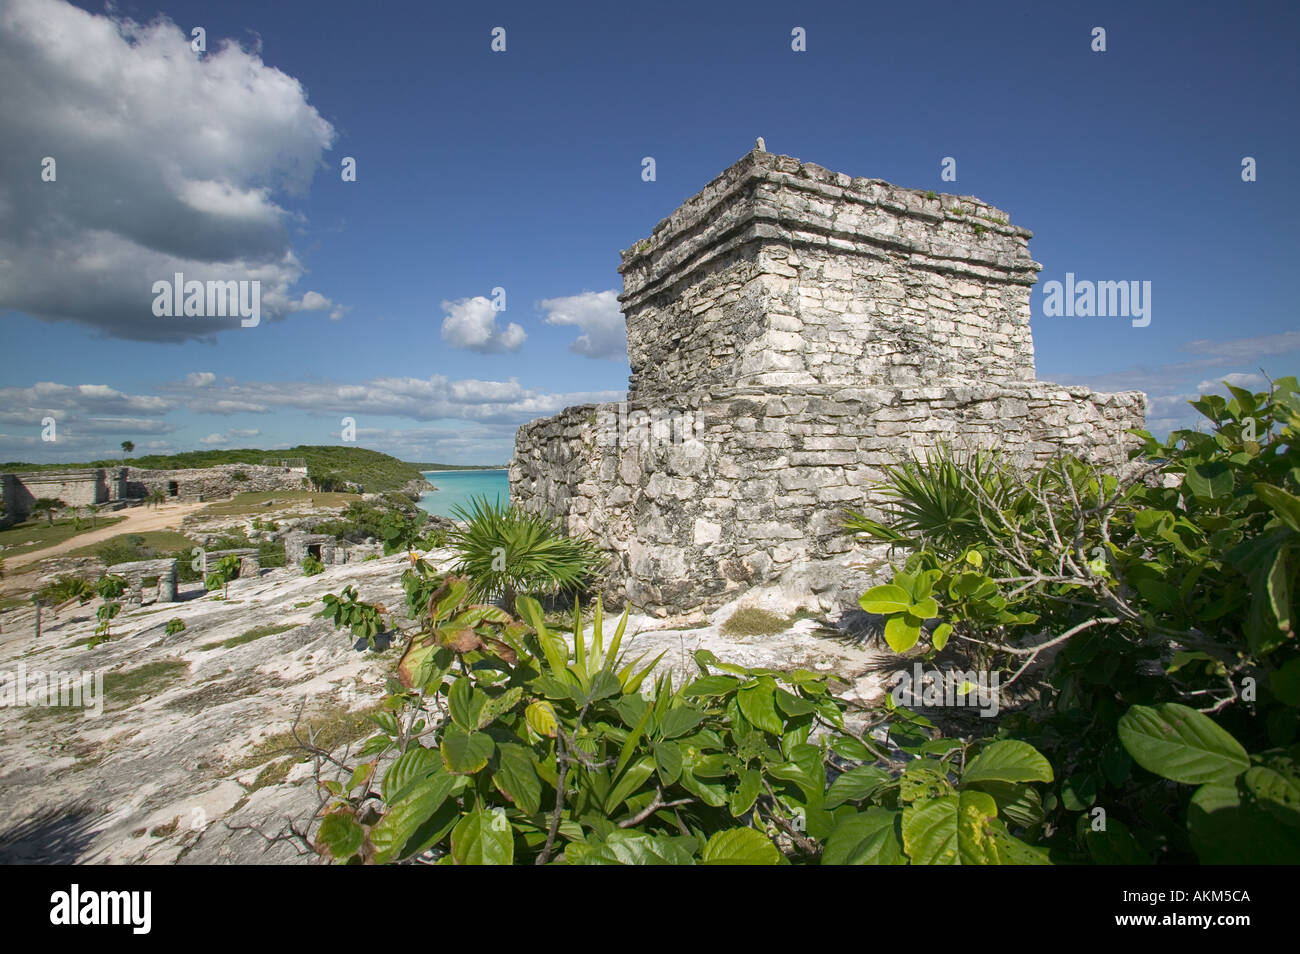 Mayan ruins on waterfront Tulum Mexico - Stock Image